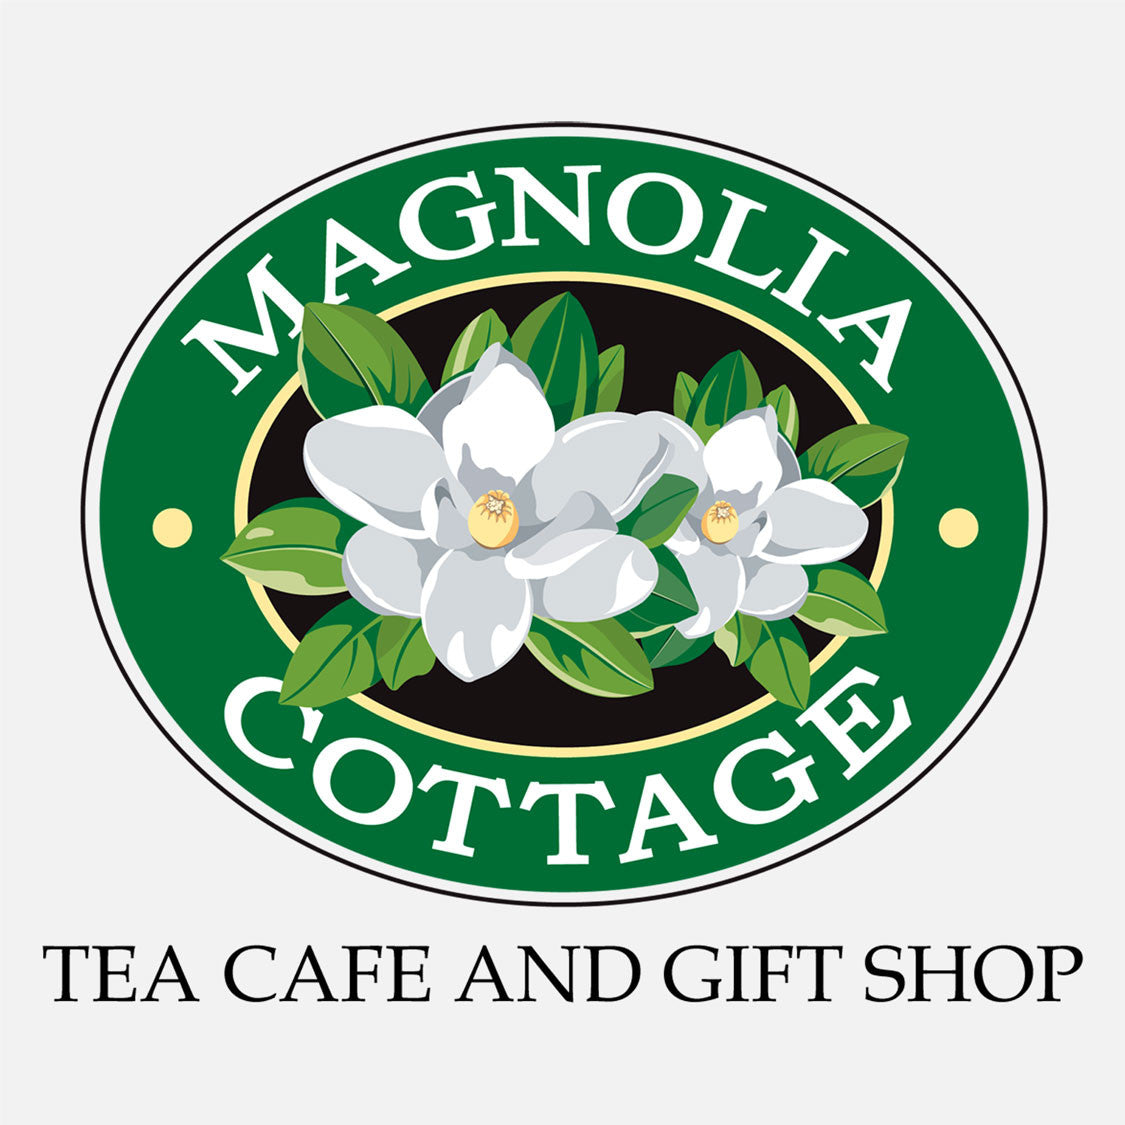 Magnolia Cottage Tea Cafe and Gift Shop